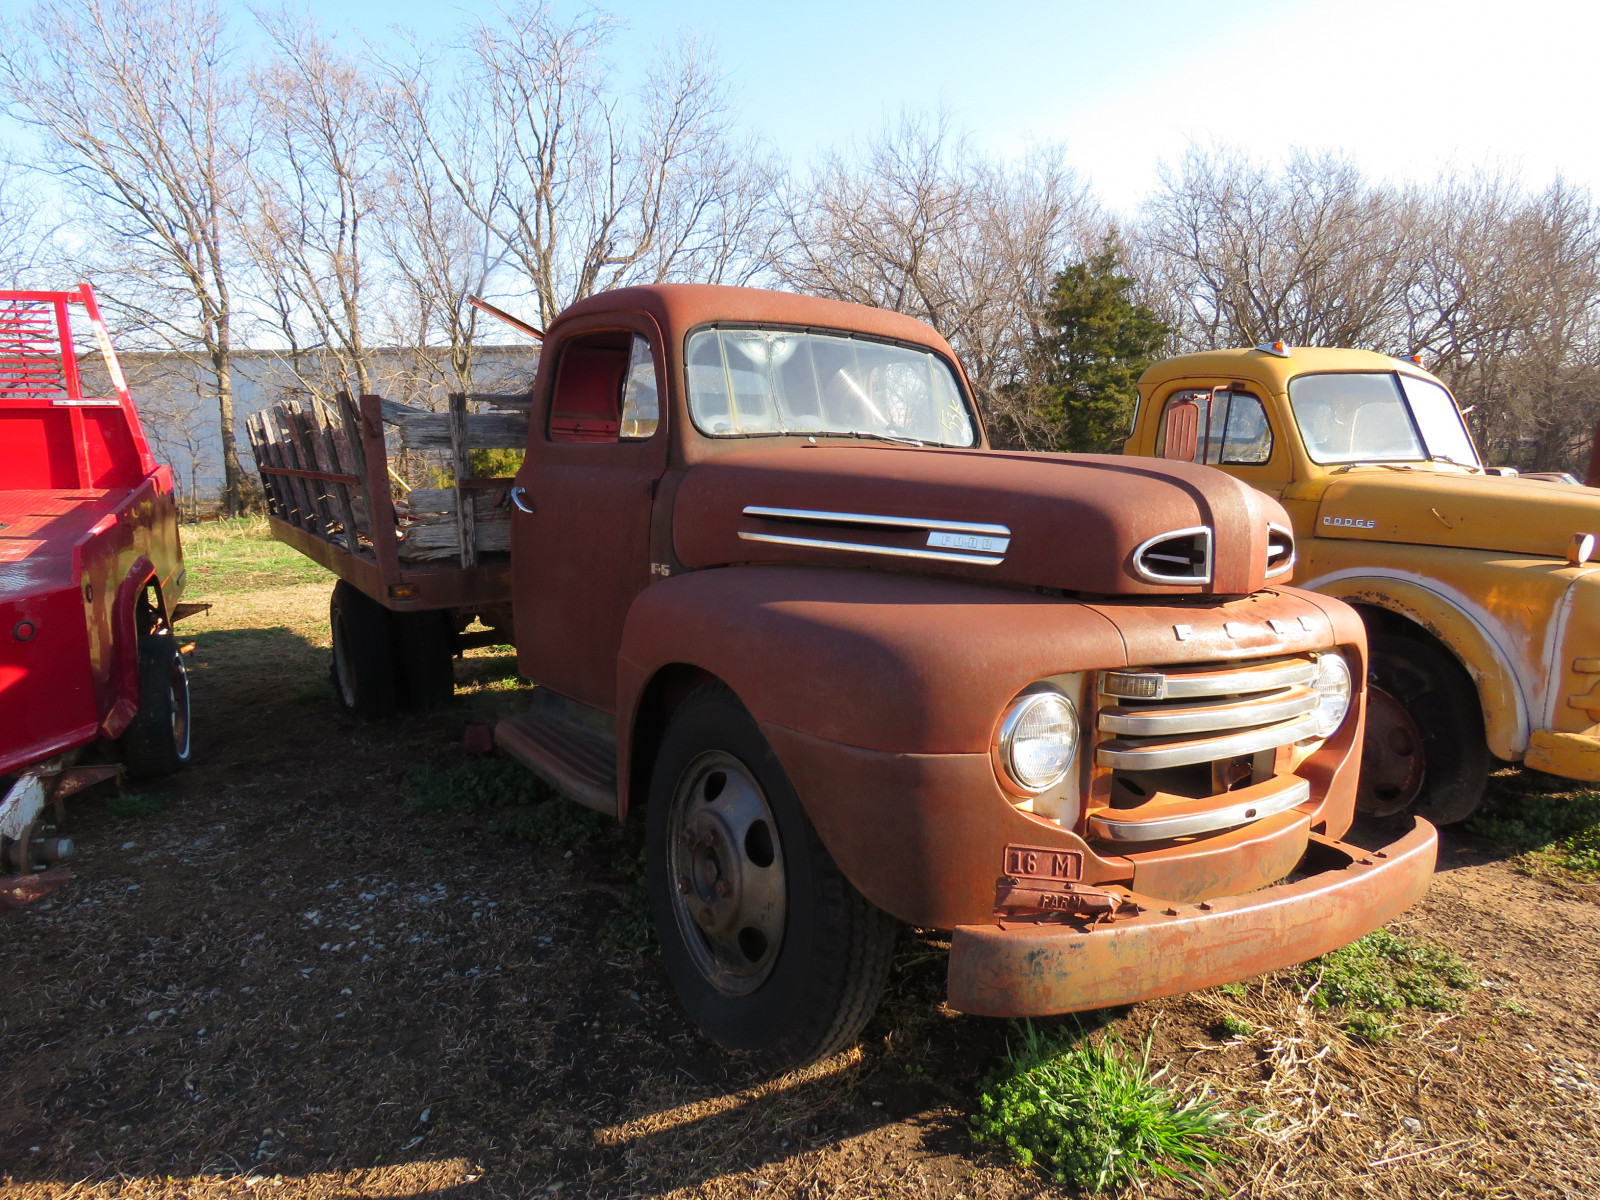 1949 Ford Truck - Image 2